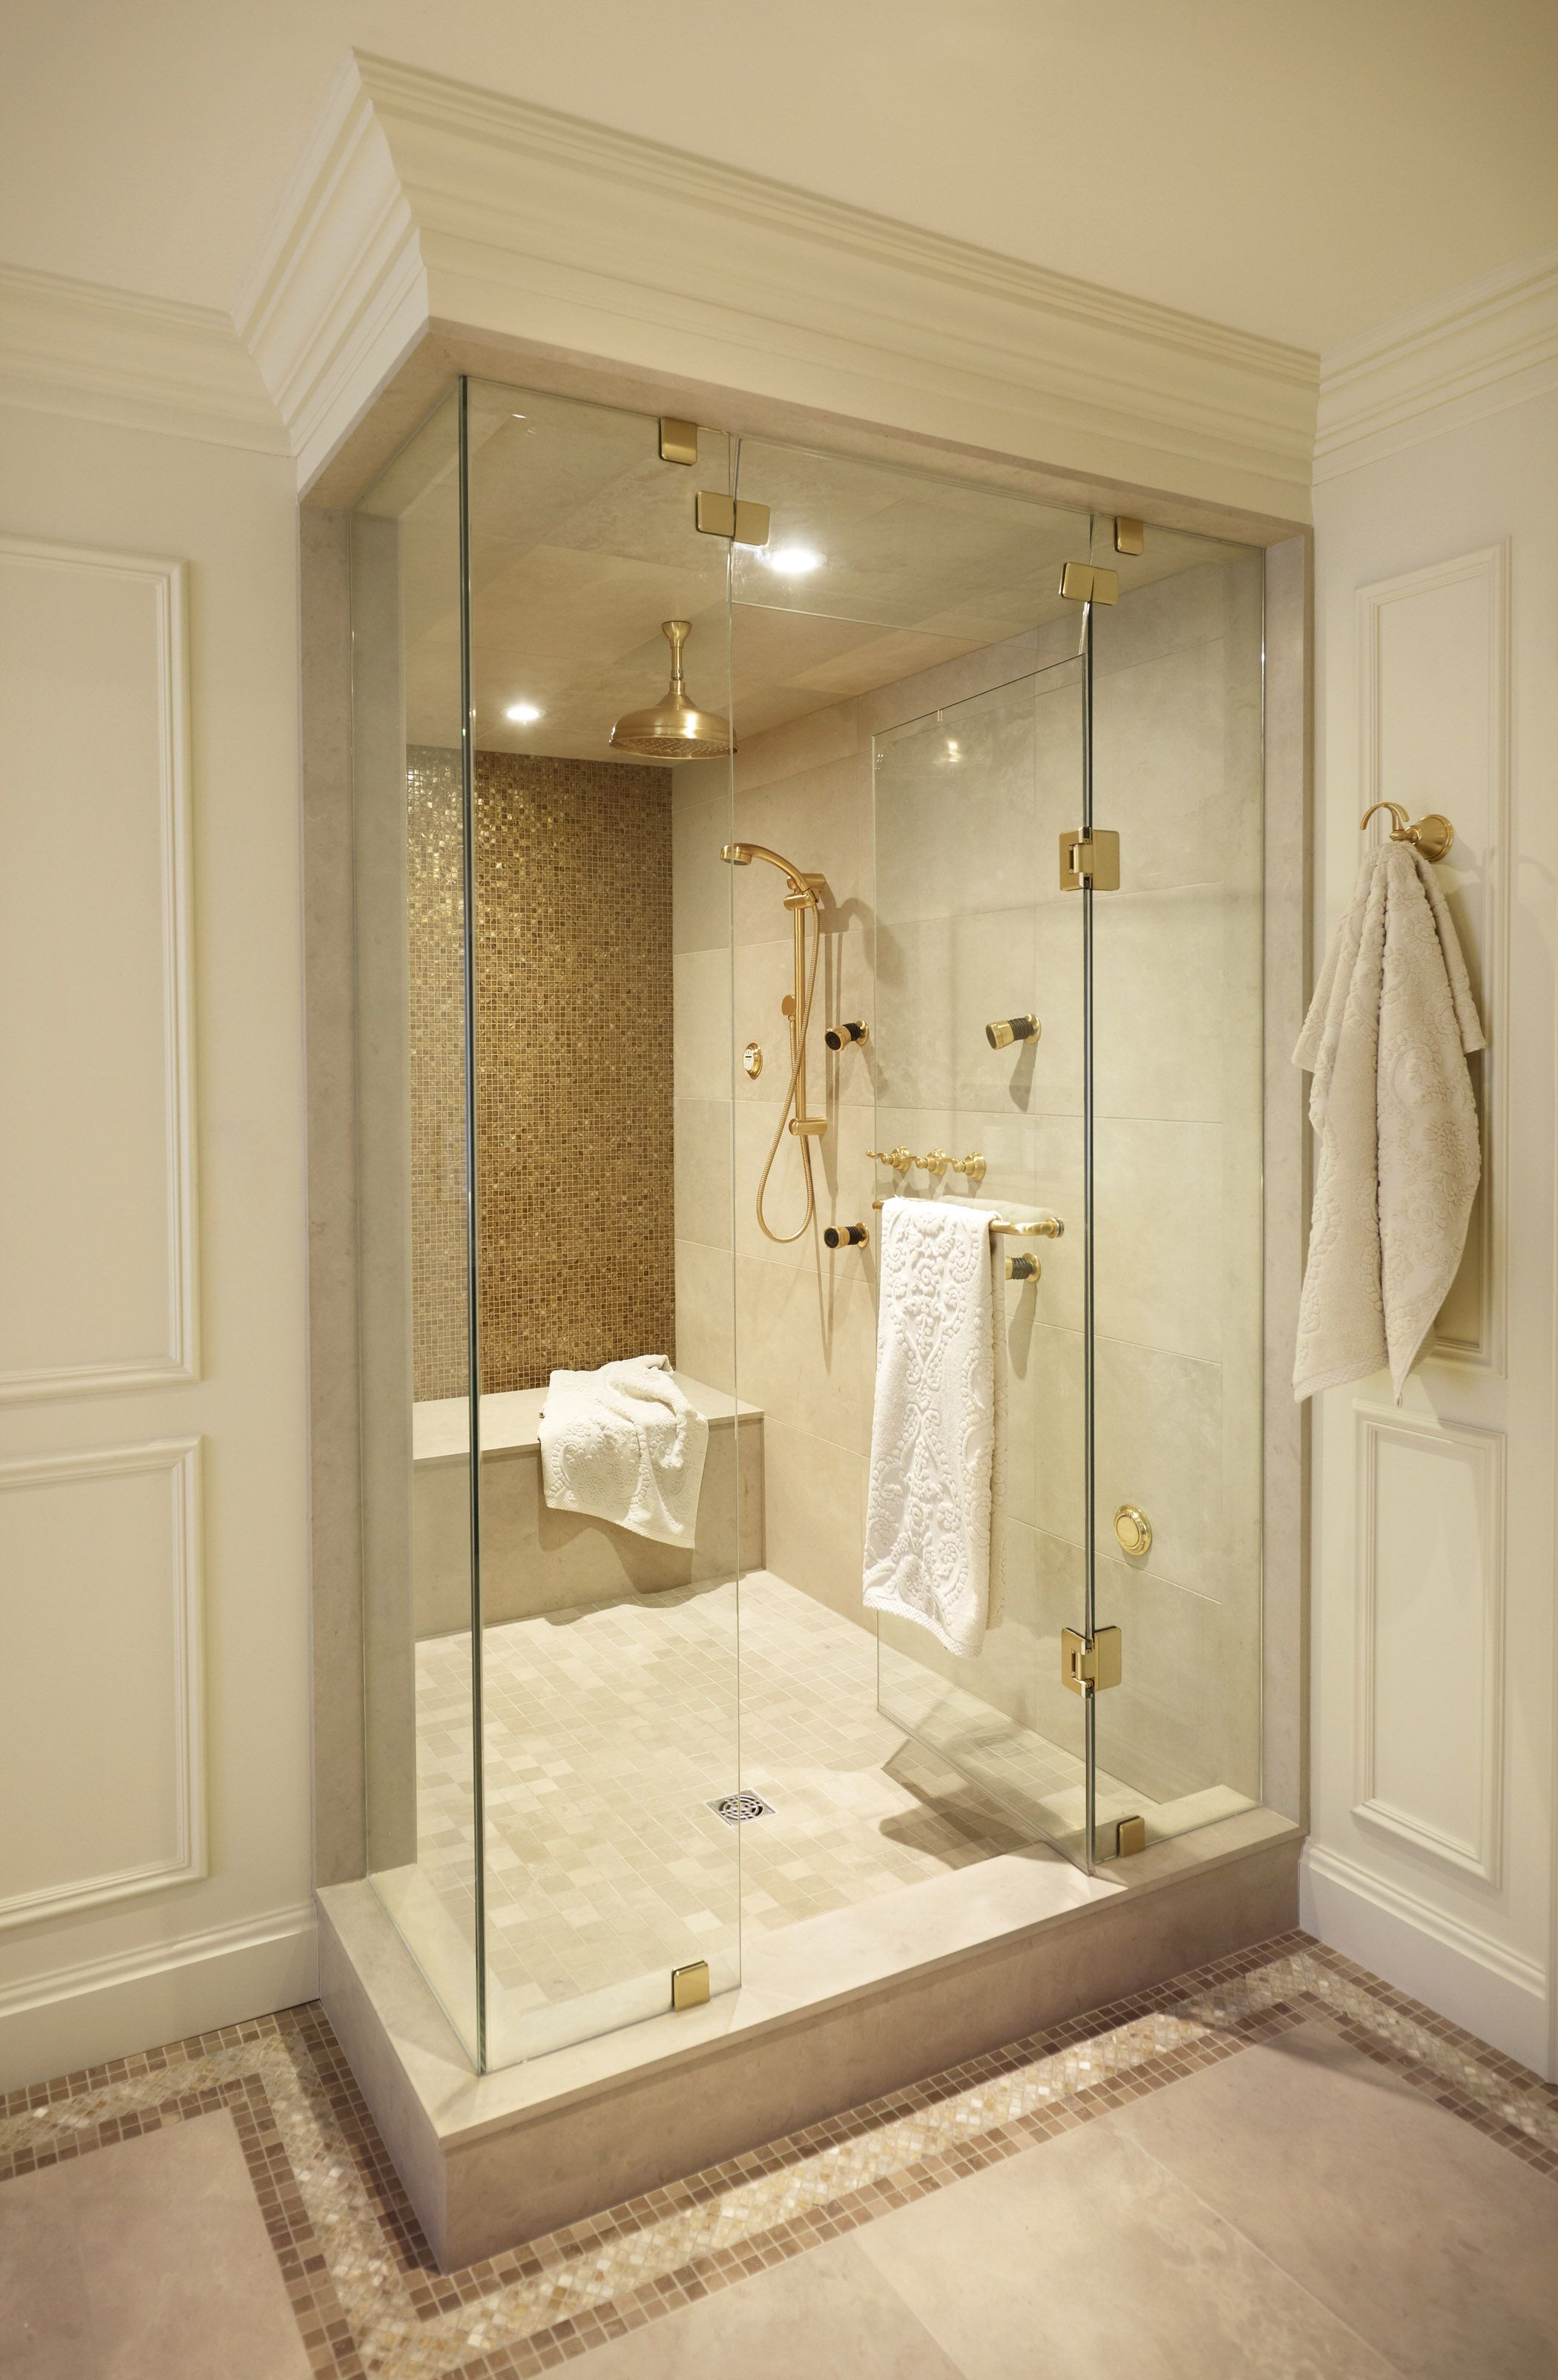 Bathroom designs for couples - Interior Design Project Couple S Retreat Regina Sturrock Design Inc